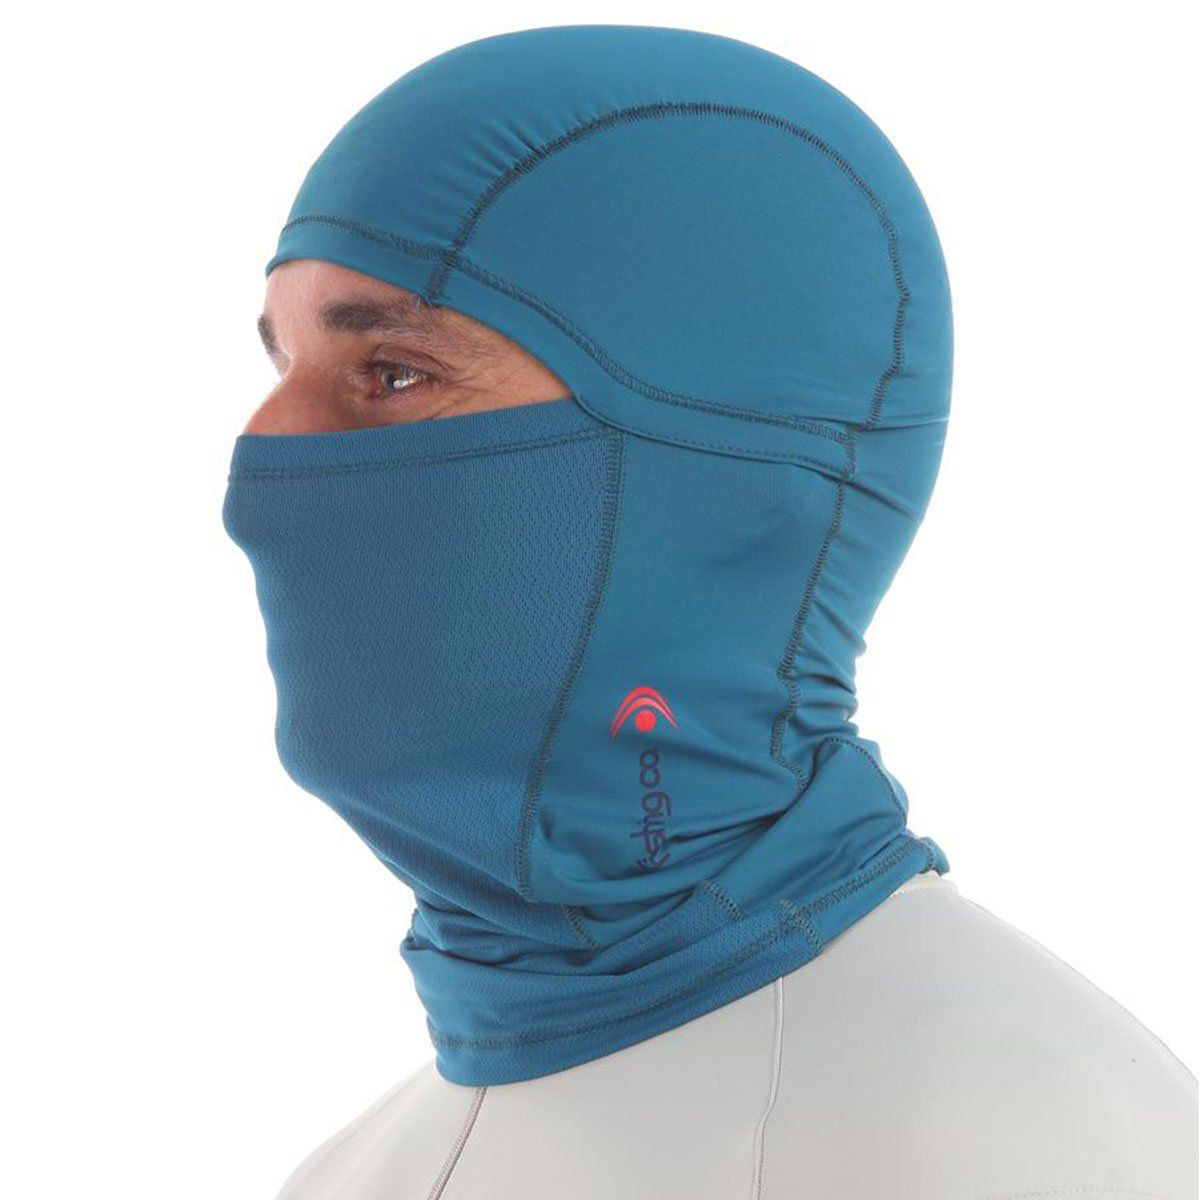 Capuz Ninja Balaclava Fishing Co UPF50+